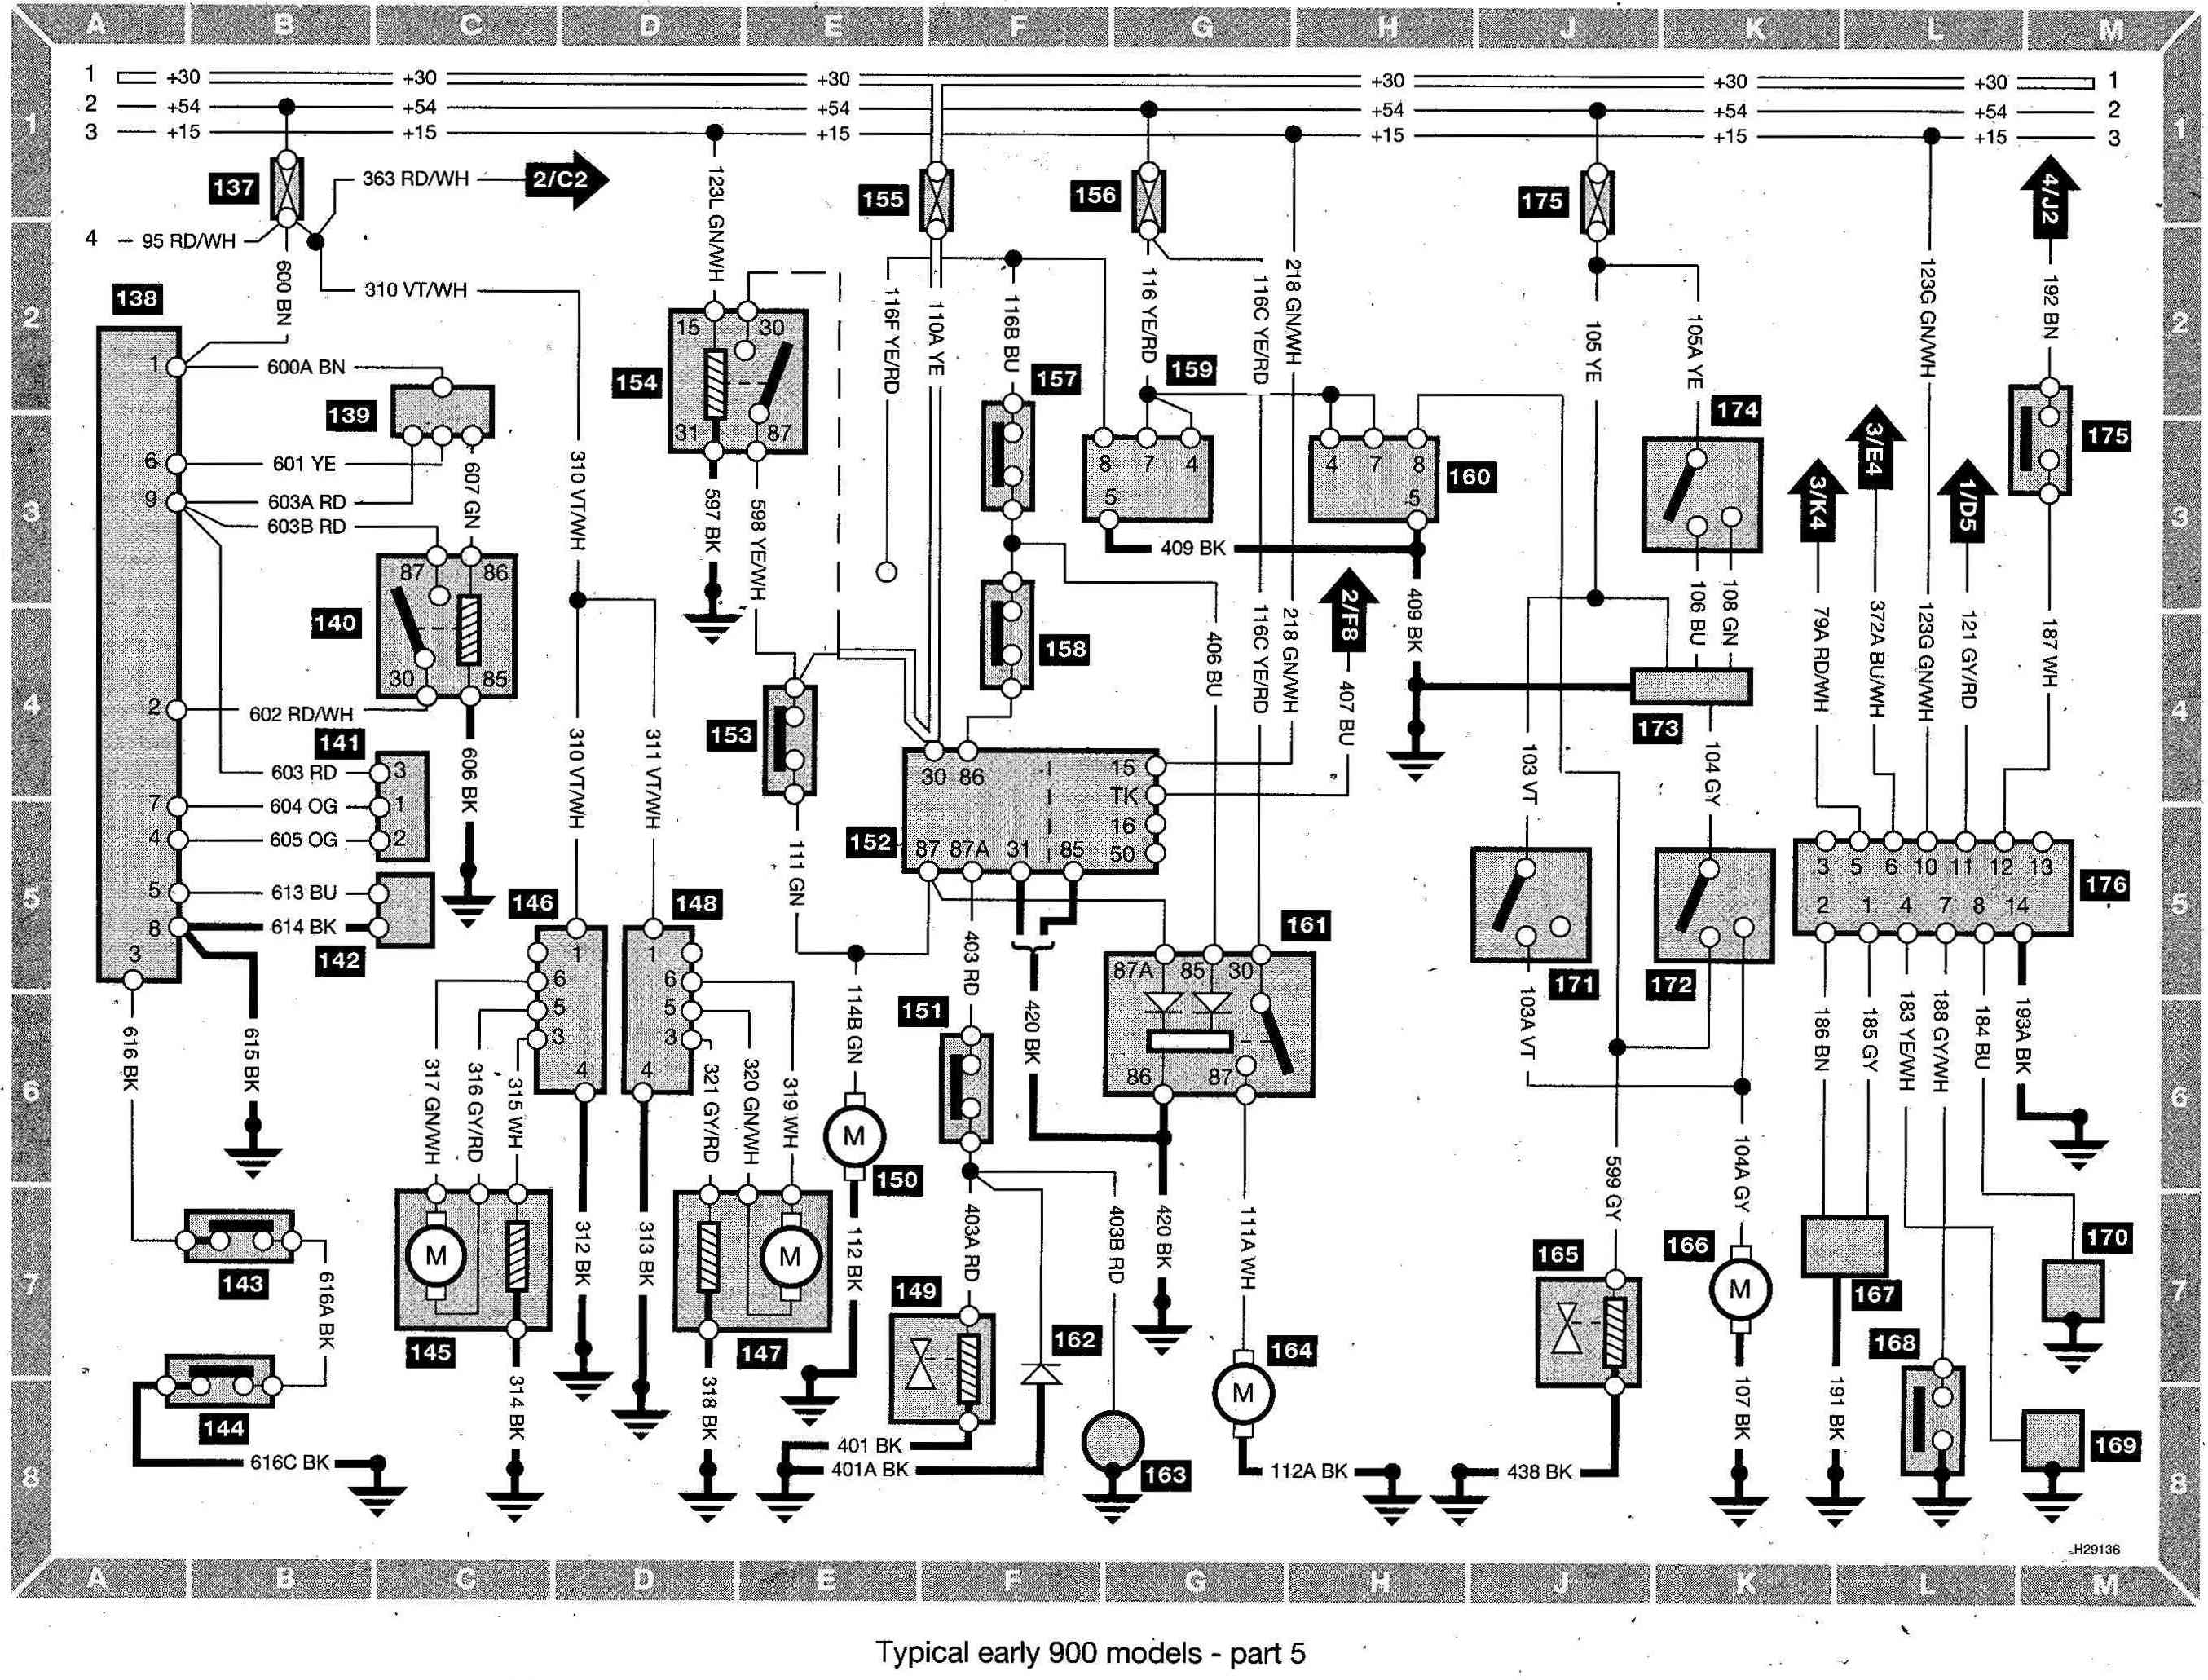 saab 9 5 wiring diagram 2001 saab 9 5 wiring diagram well 1999 saab 9 3 radio wiring diagram saab 900 radio ... #9